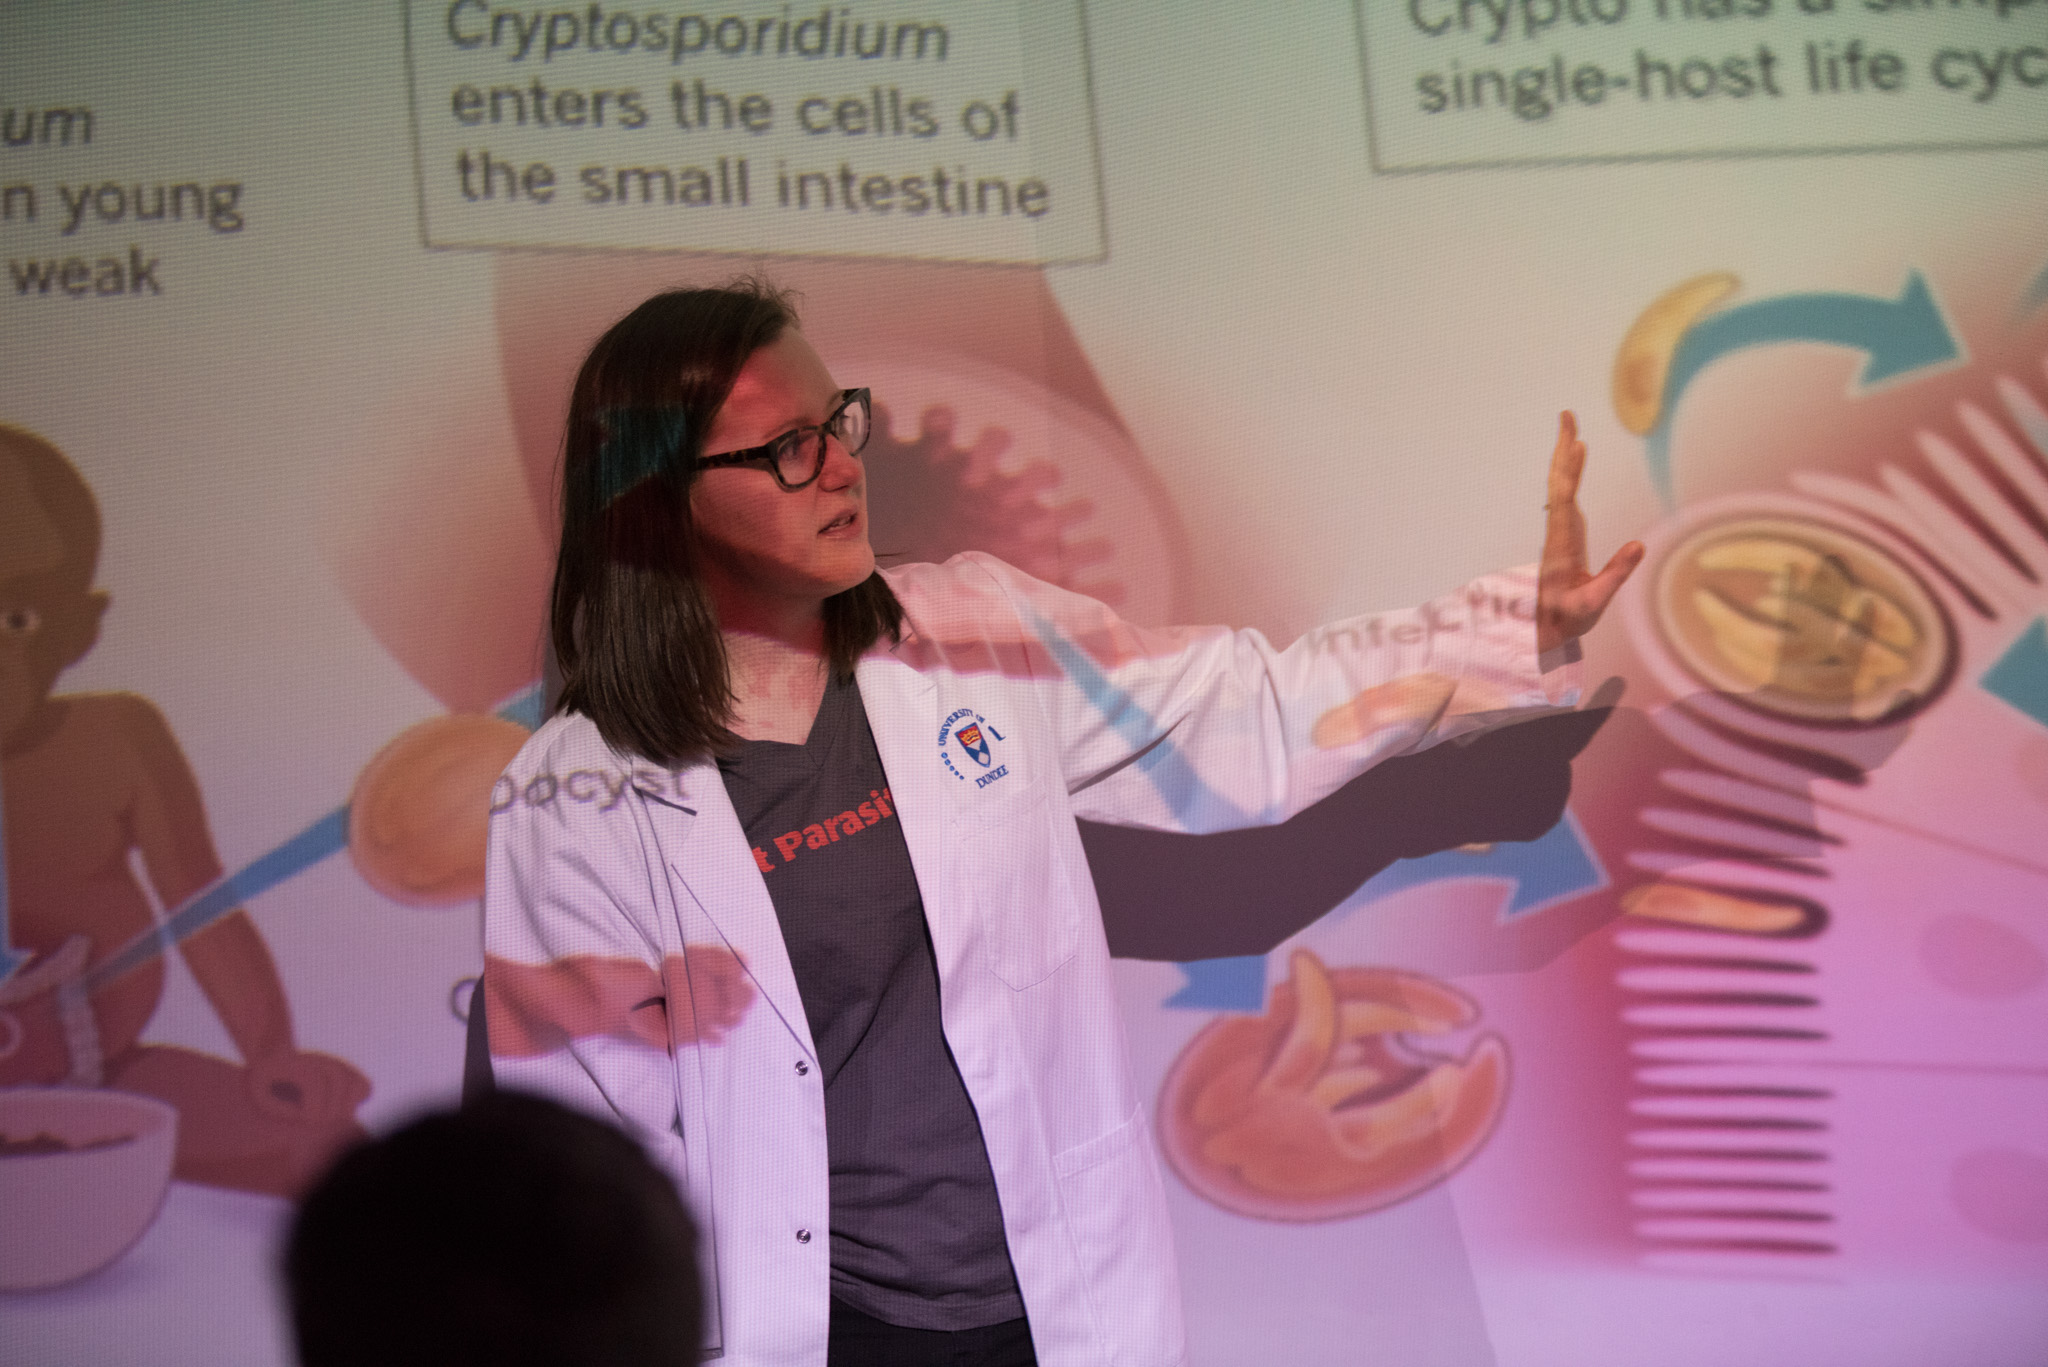 Scientist Mattie Pawlowic takes part in public engagement